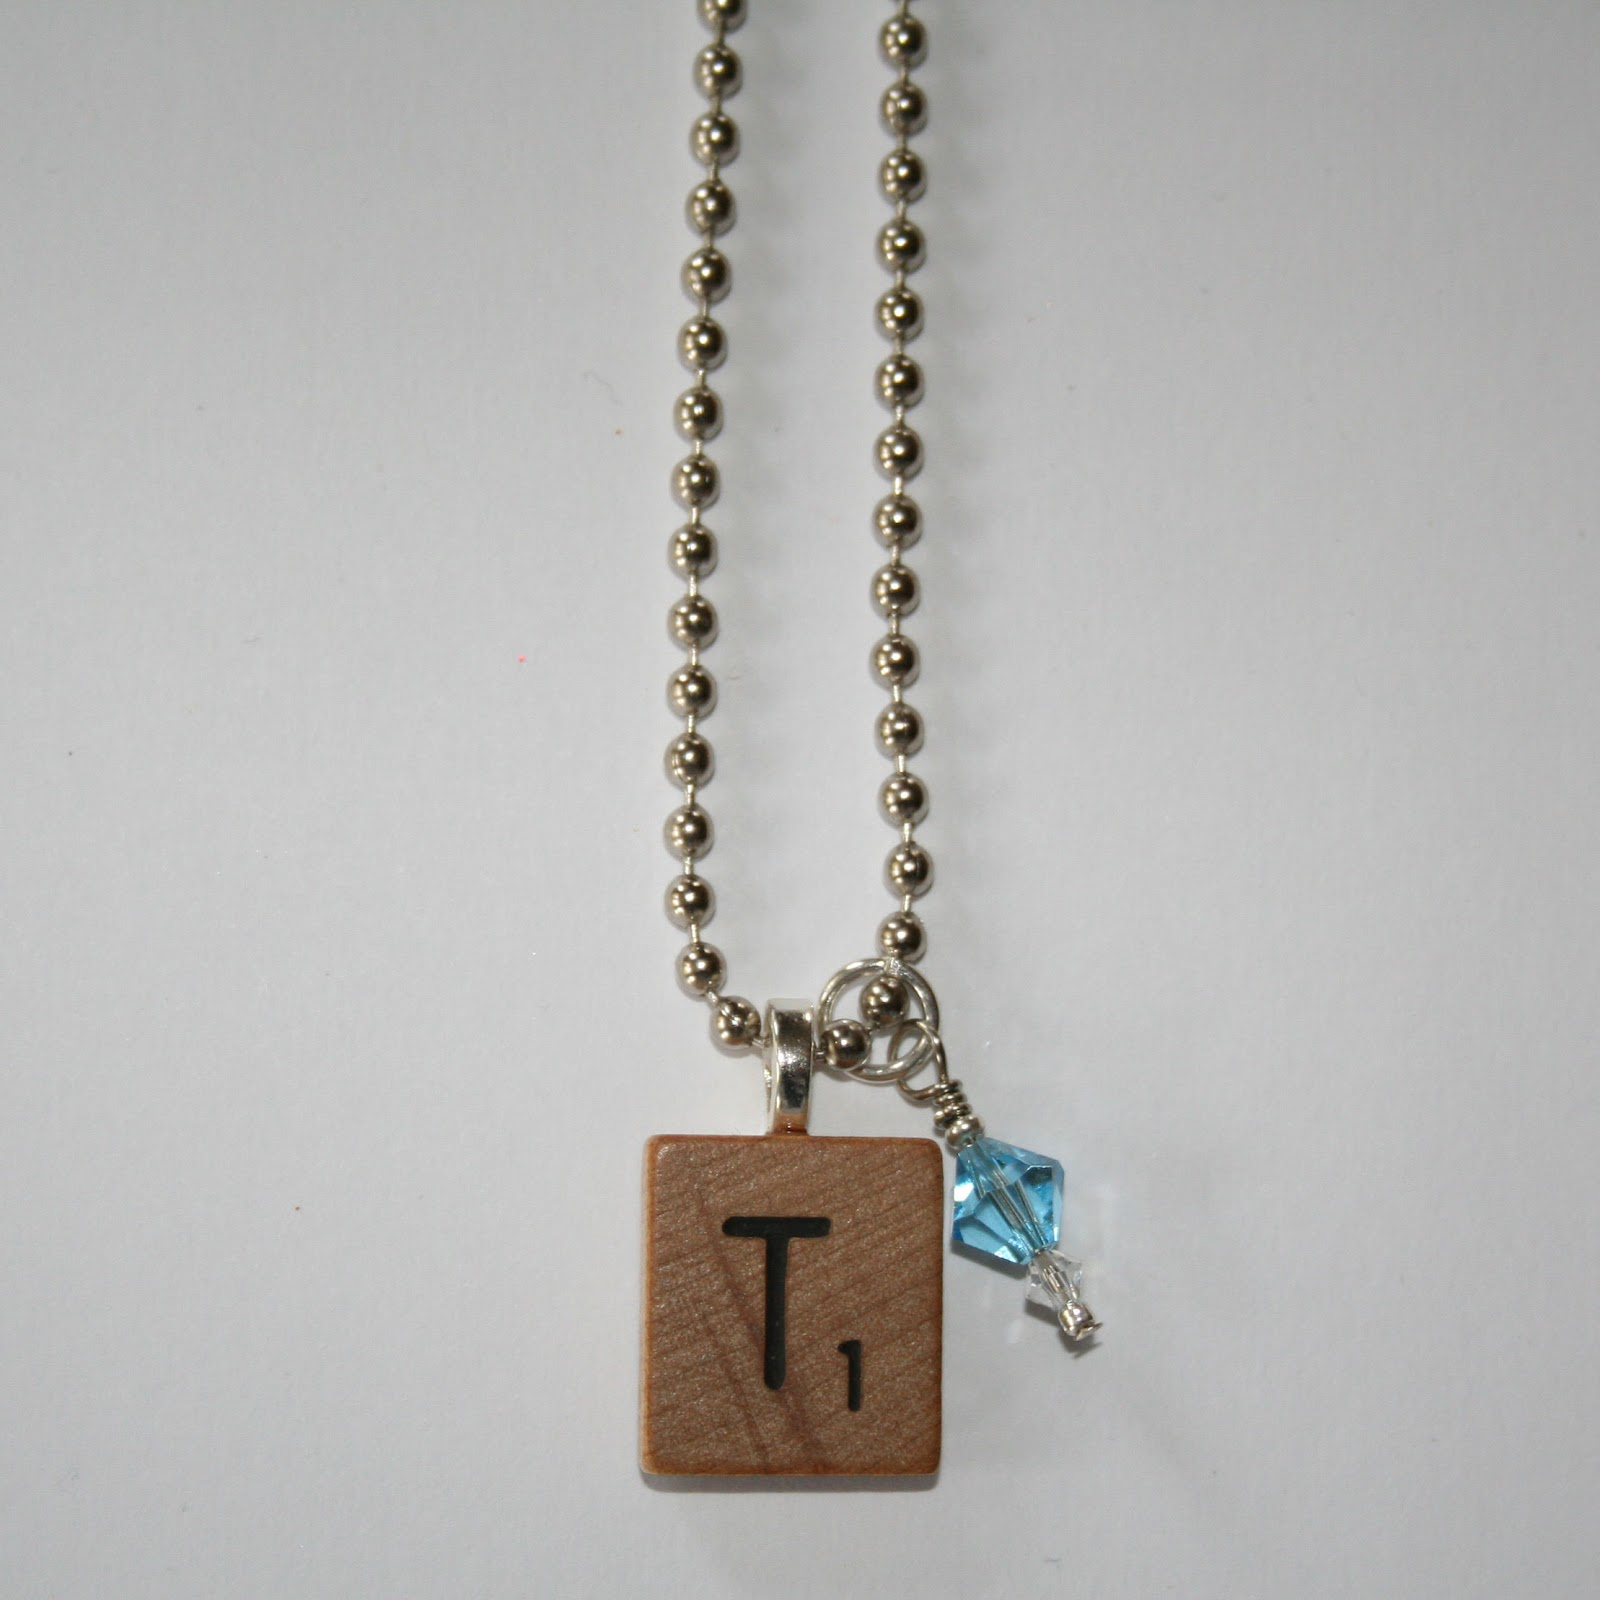 necklace upcycled scrabble tile